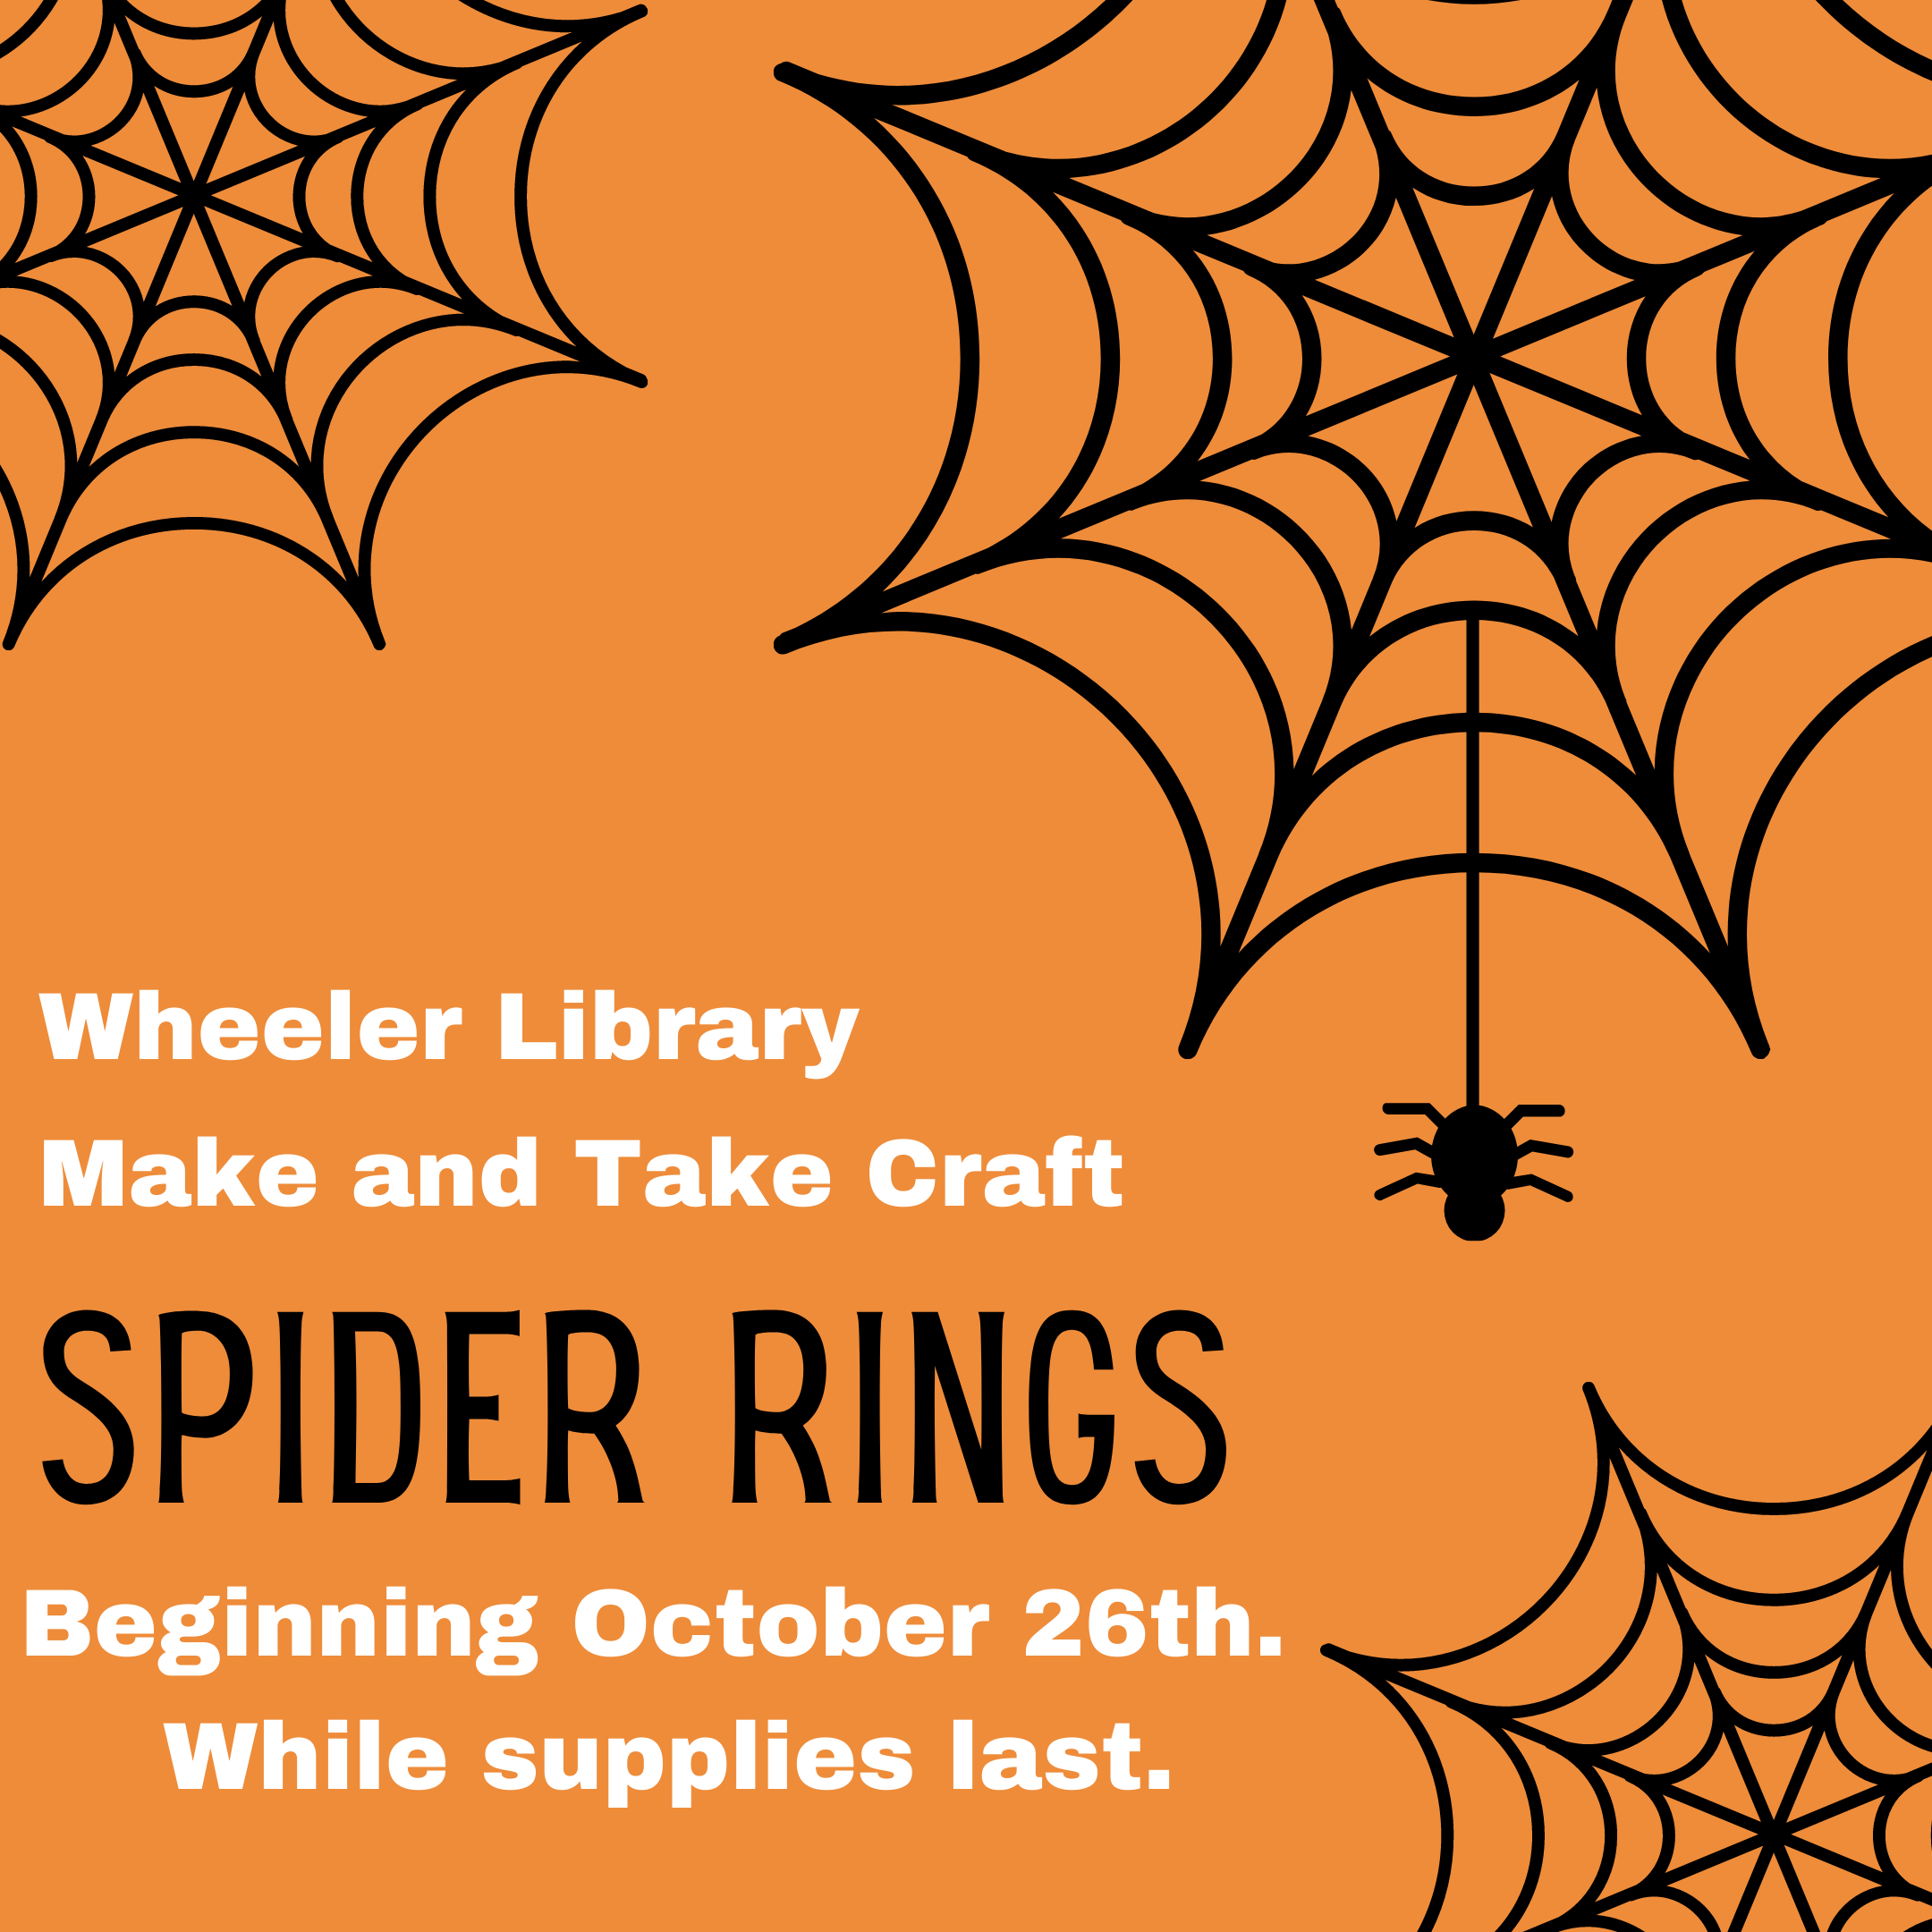 Spider rings